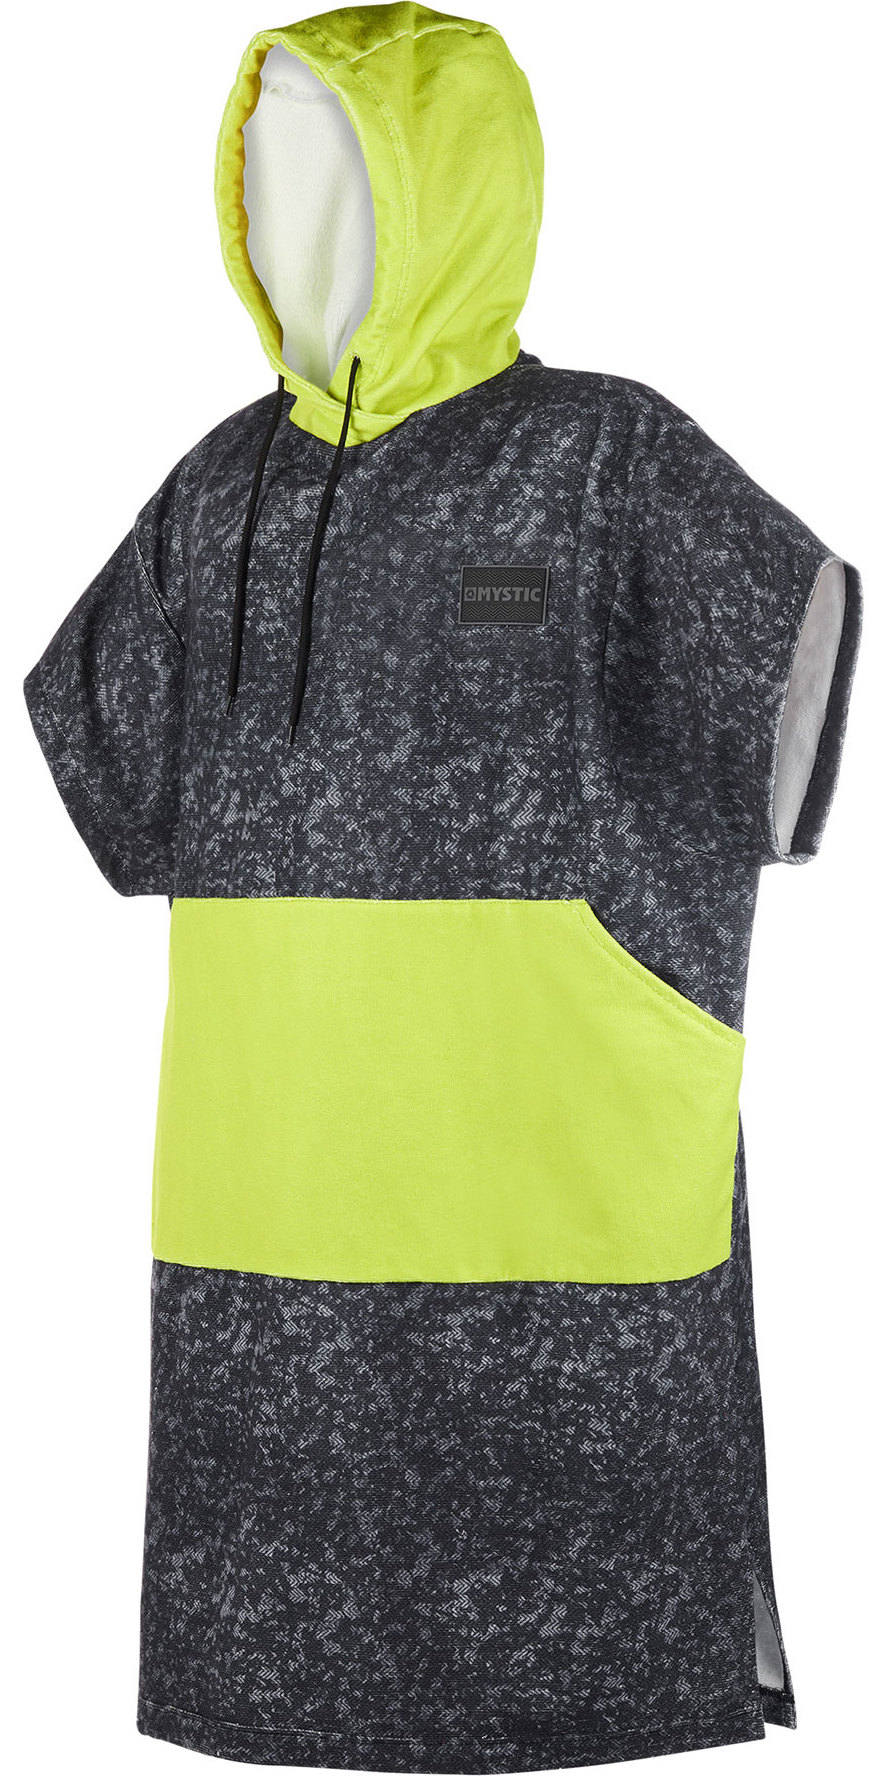 2019 Mystic Allover Poncho / Change Robe Lime 190167